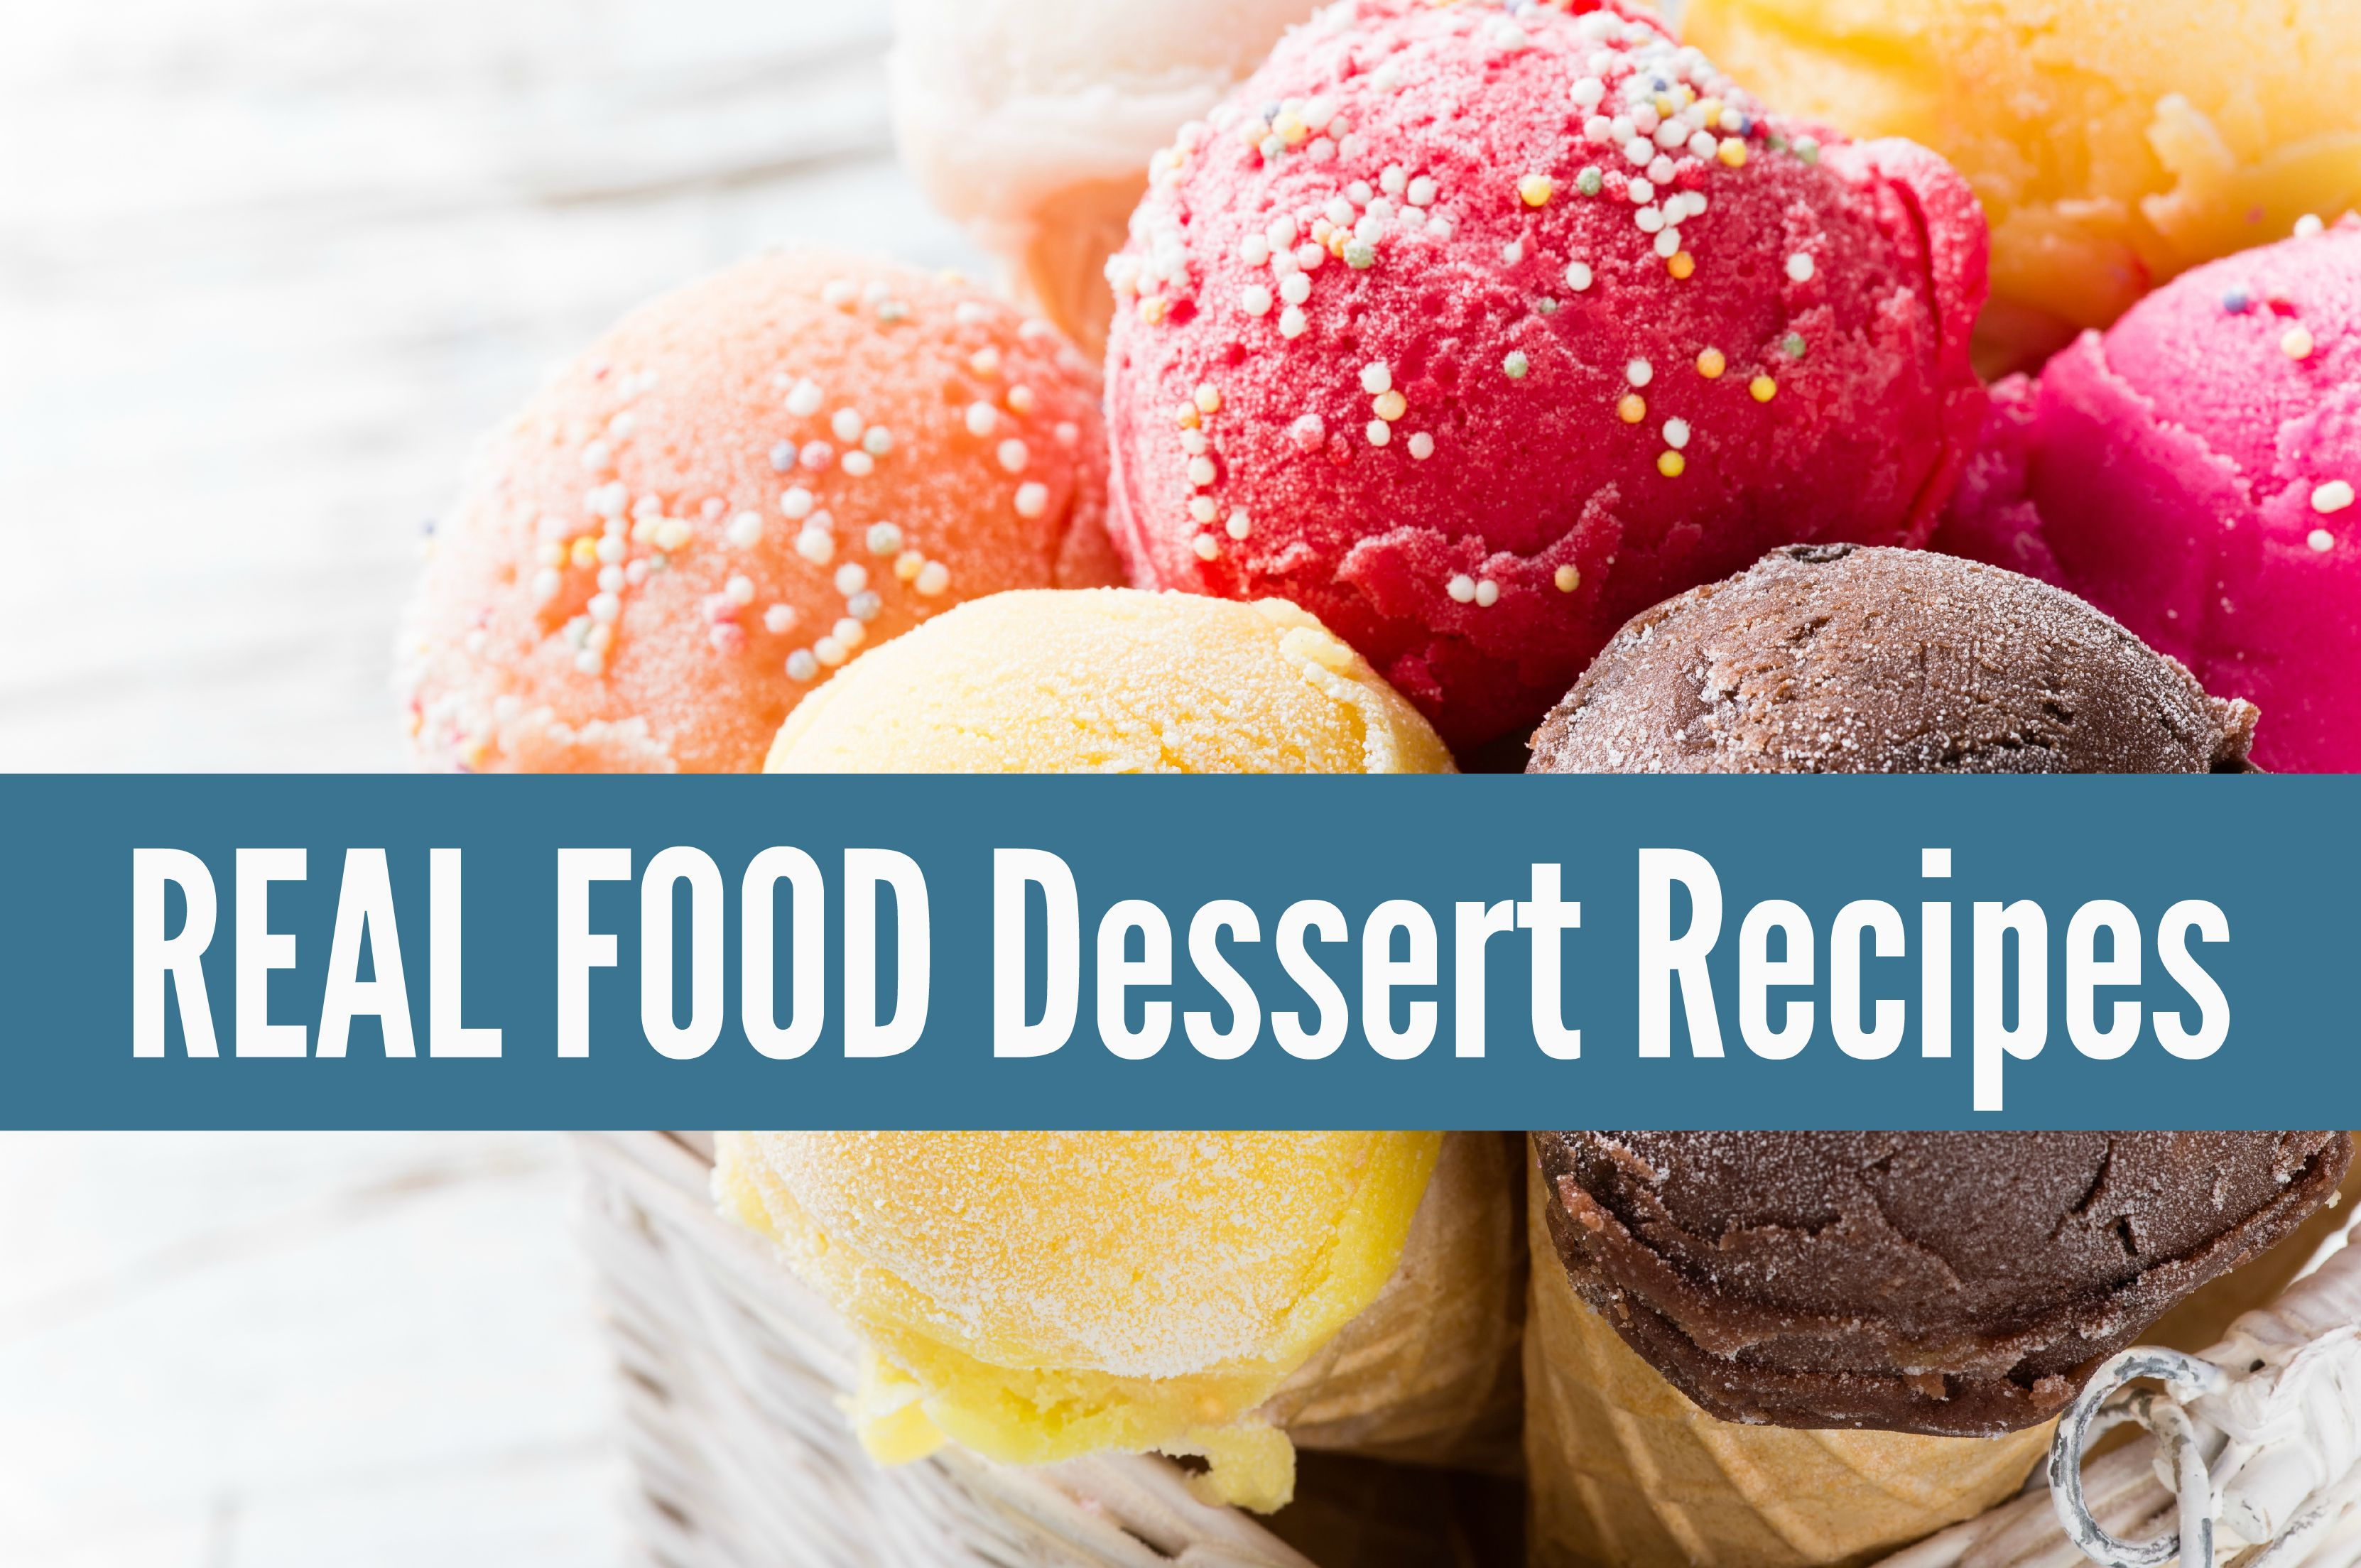 Real food dessert recipes made with real ingredients not something real food dessert recipes made with real ingredients not something from a box forumfinder Gallery